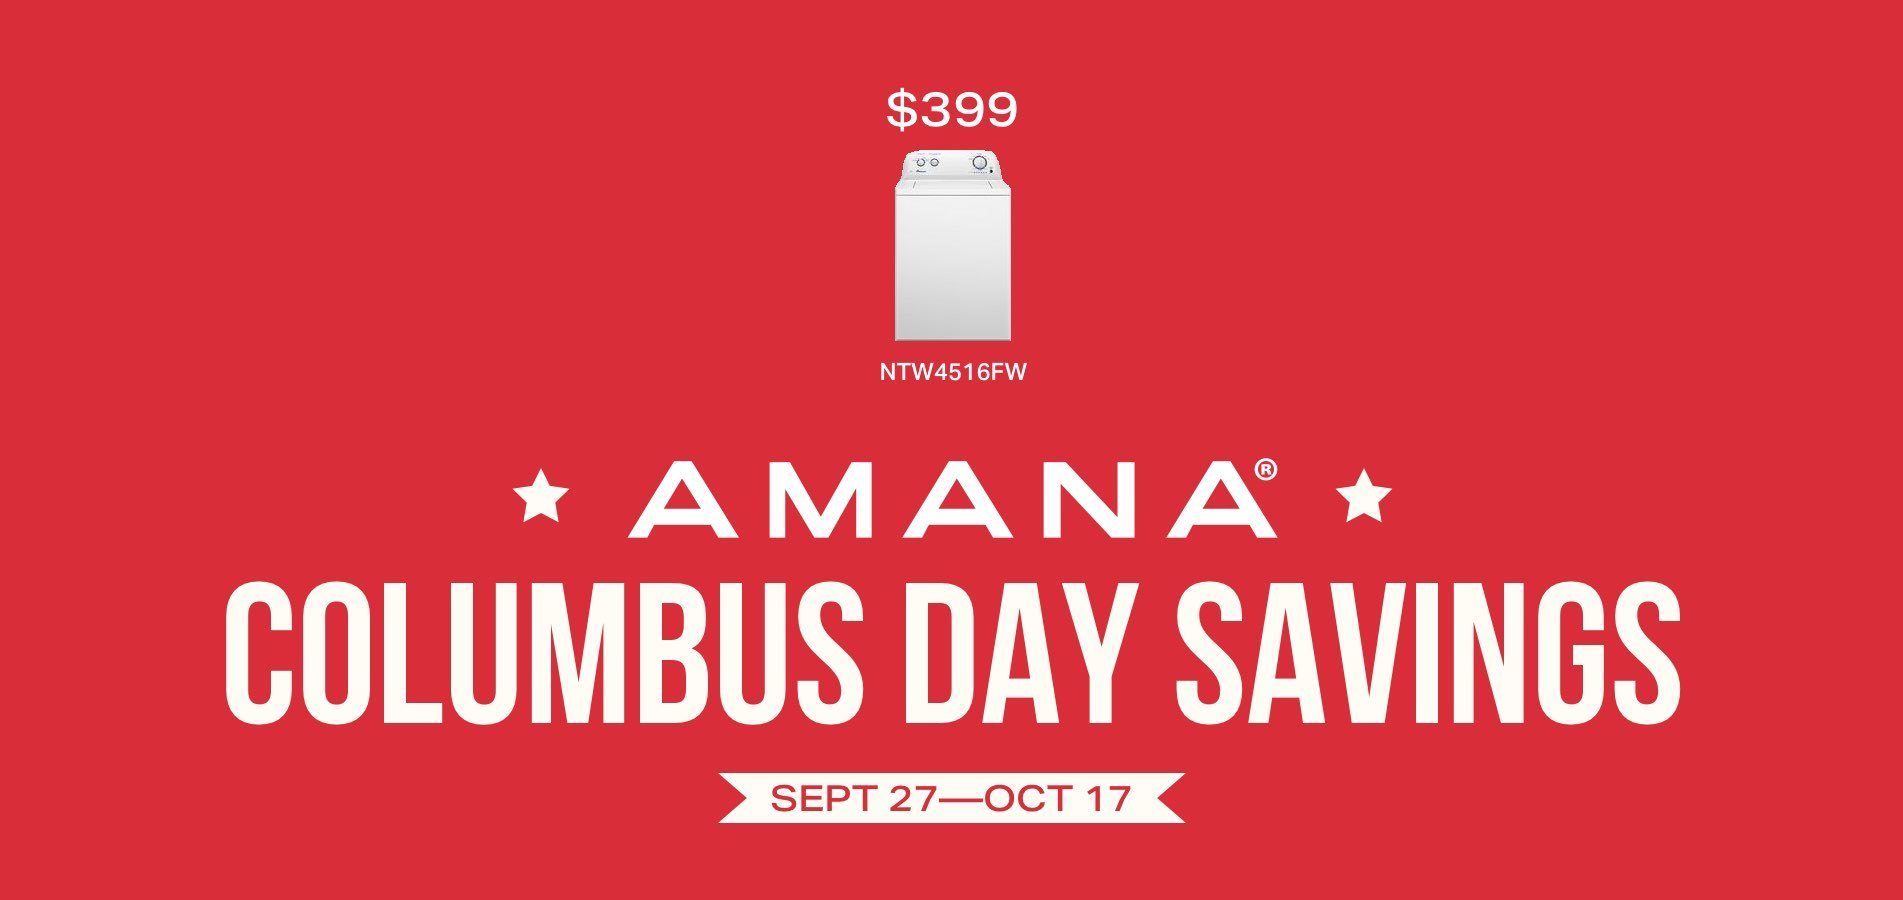 Amana Columbus Day Savings